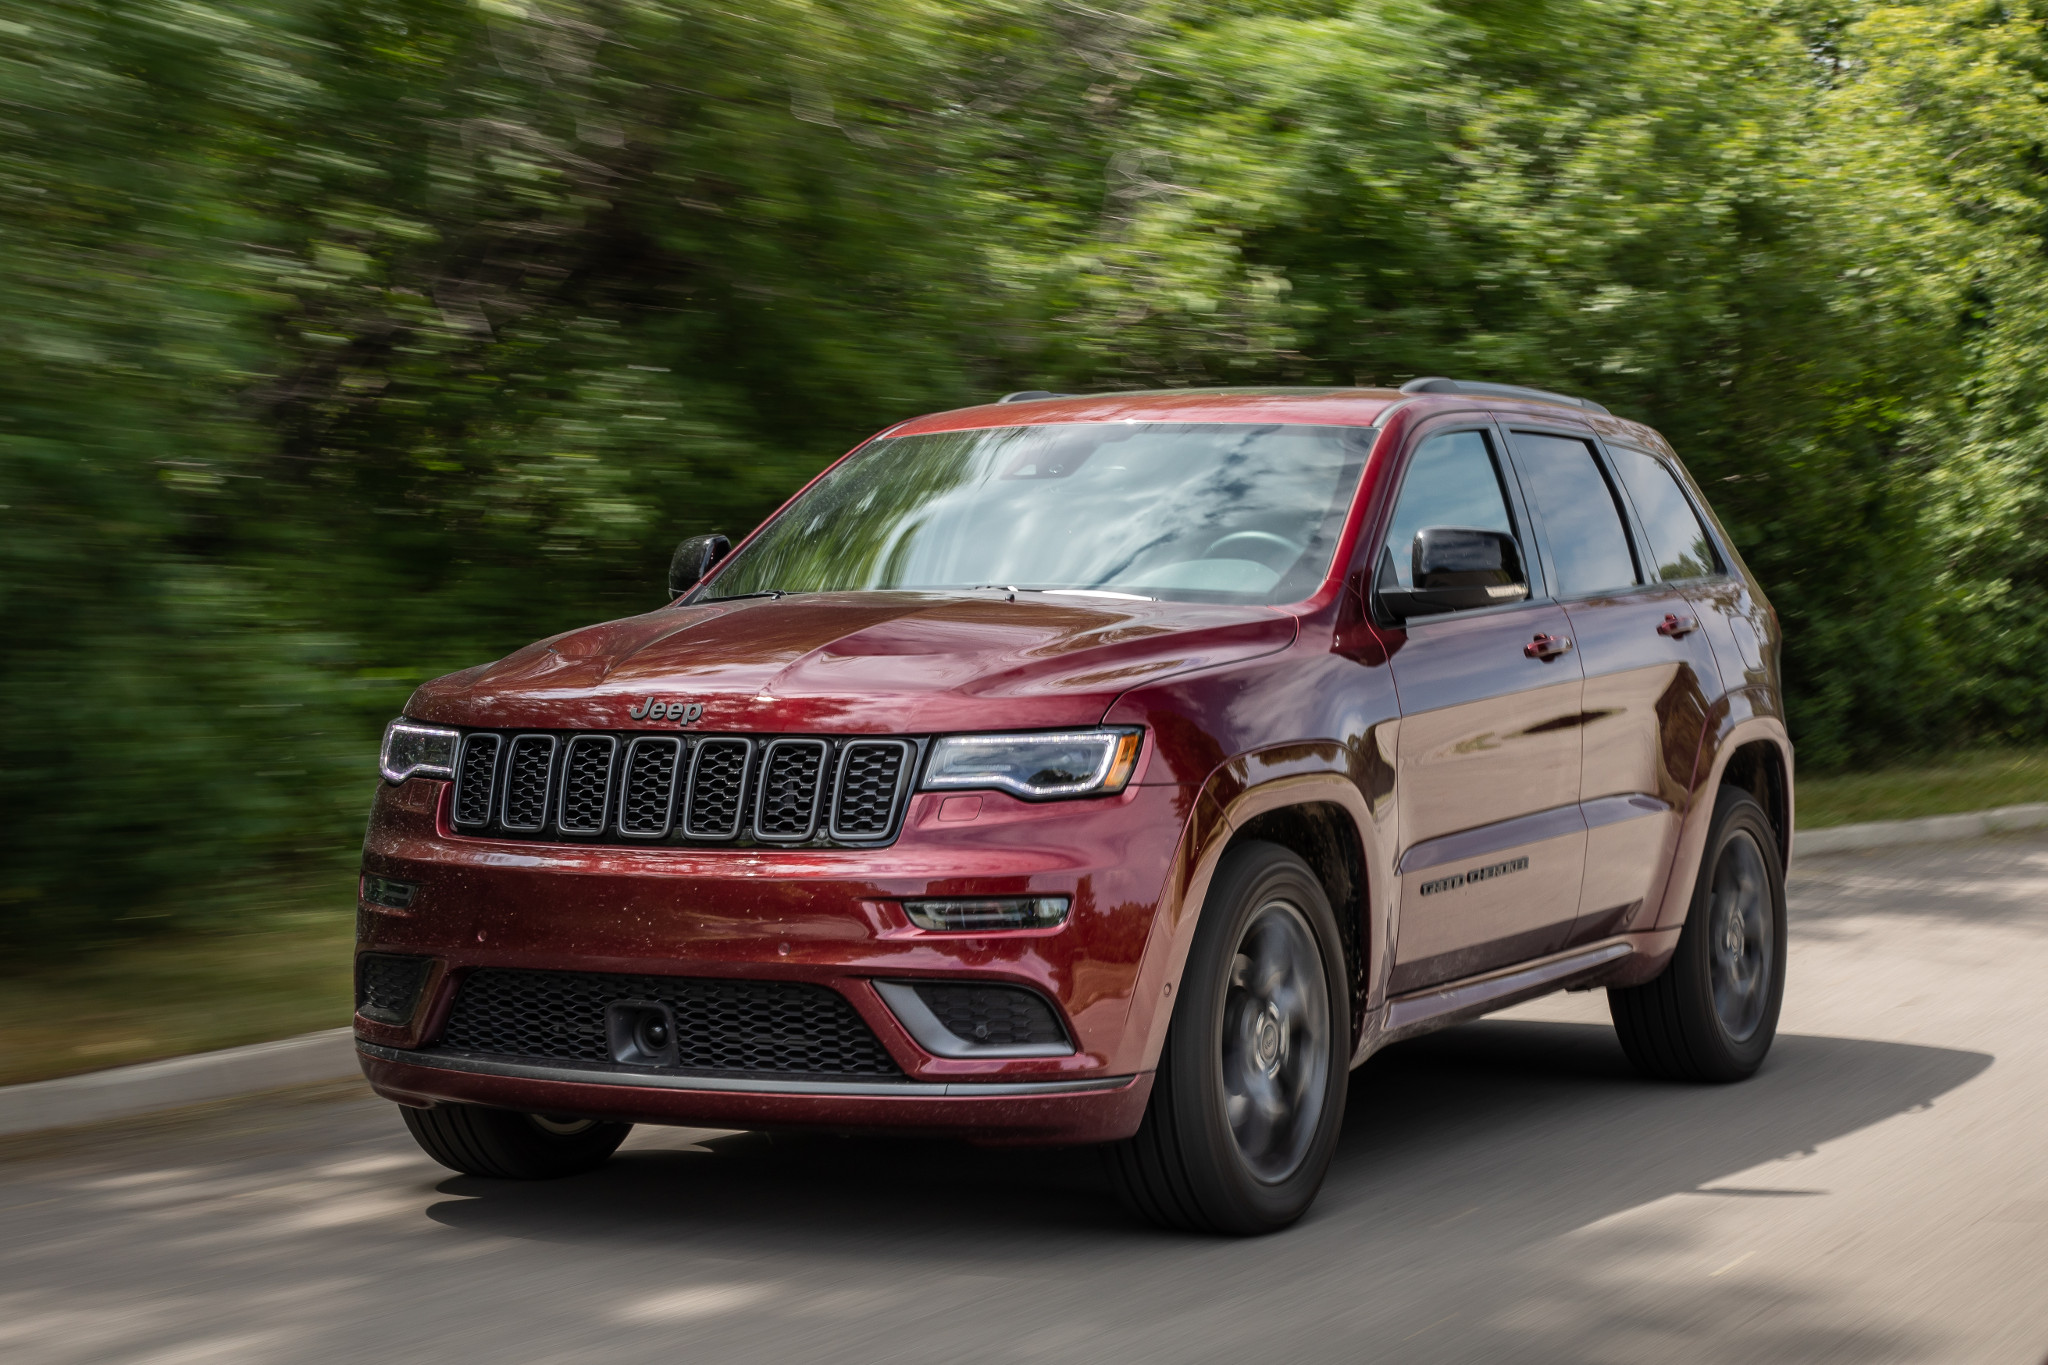 jeep-grand-cherokee-2019-06-exterior--front--red.jpg